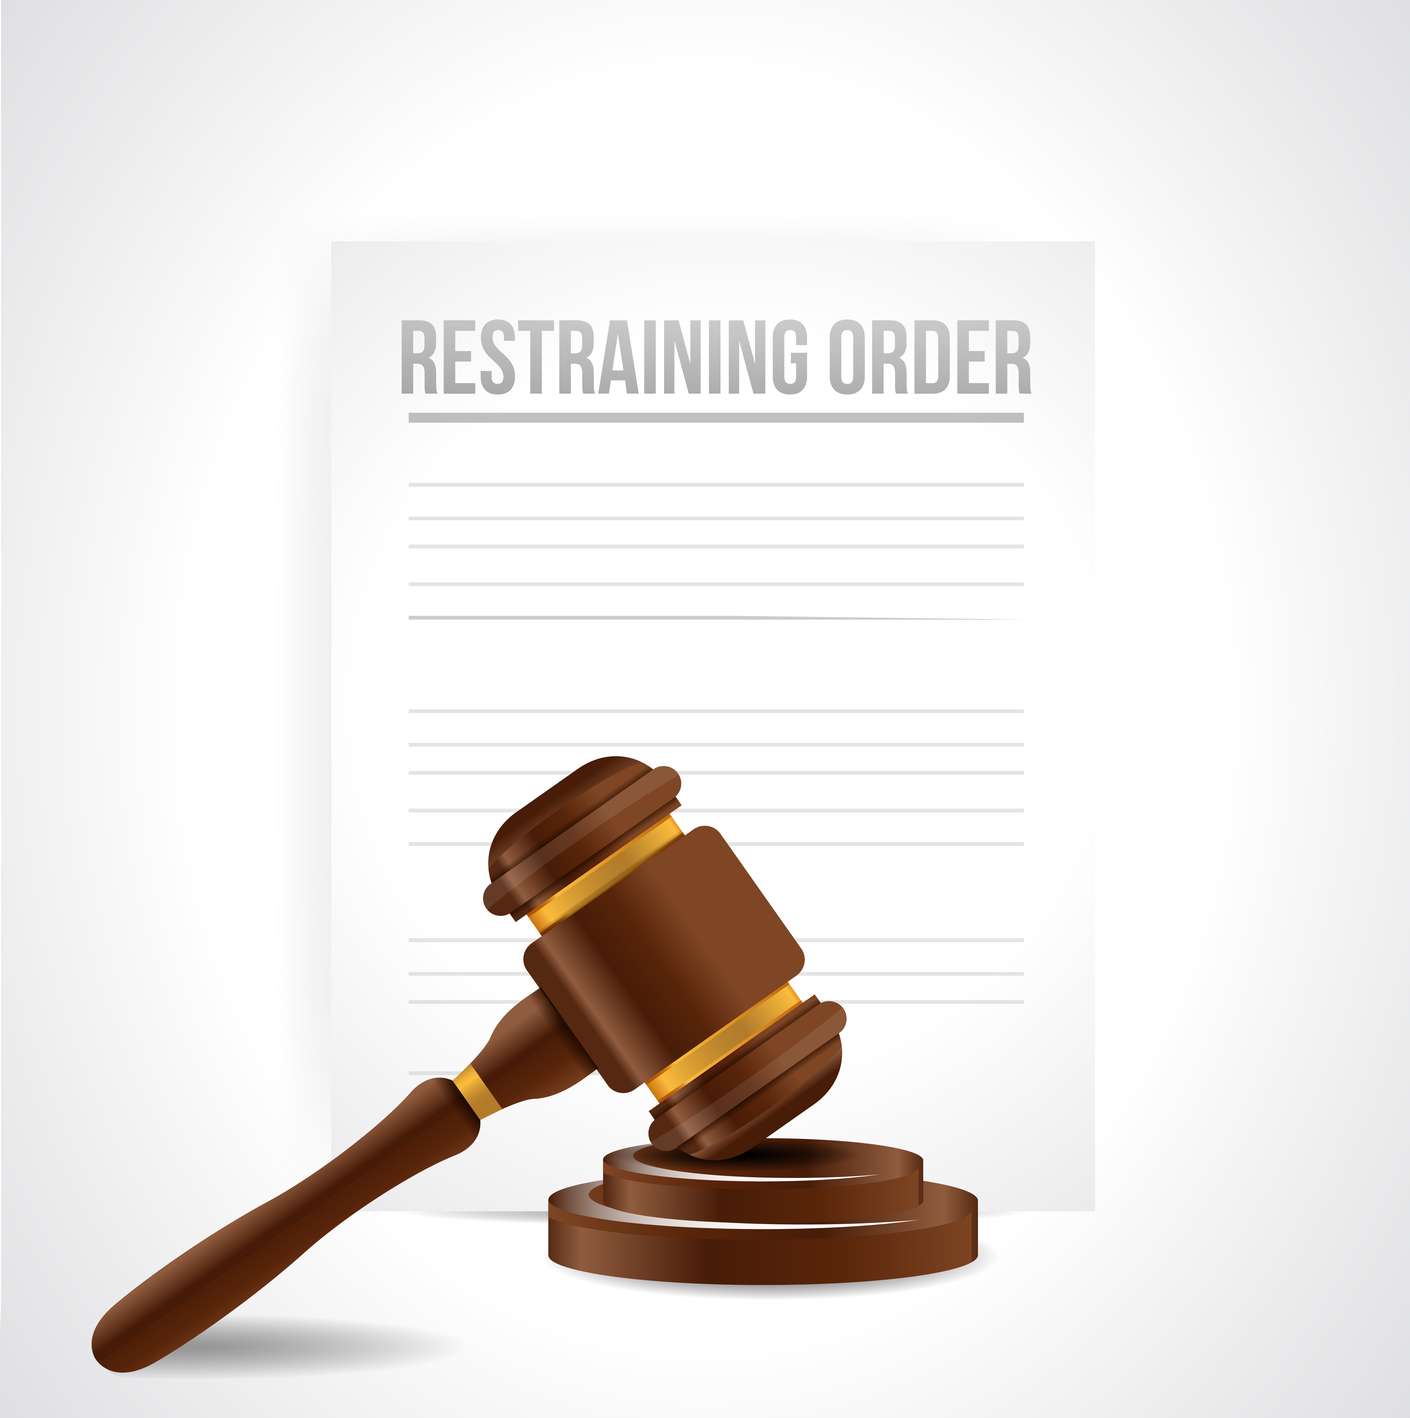 Restraining Order Lawyer